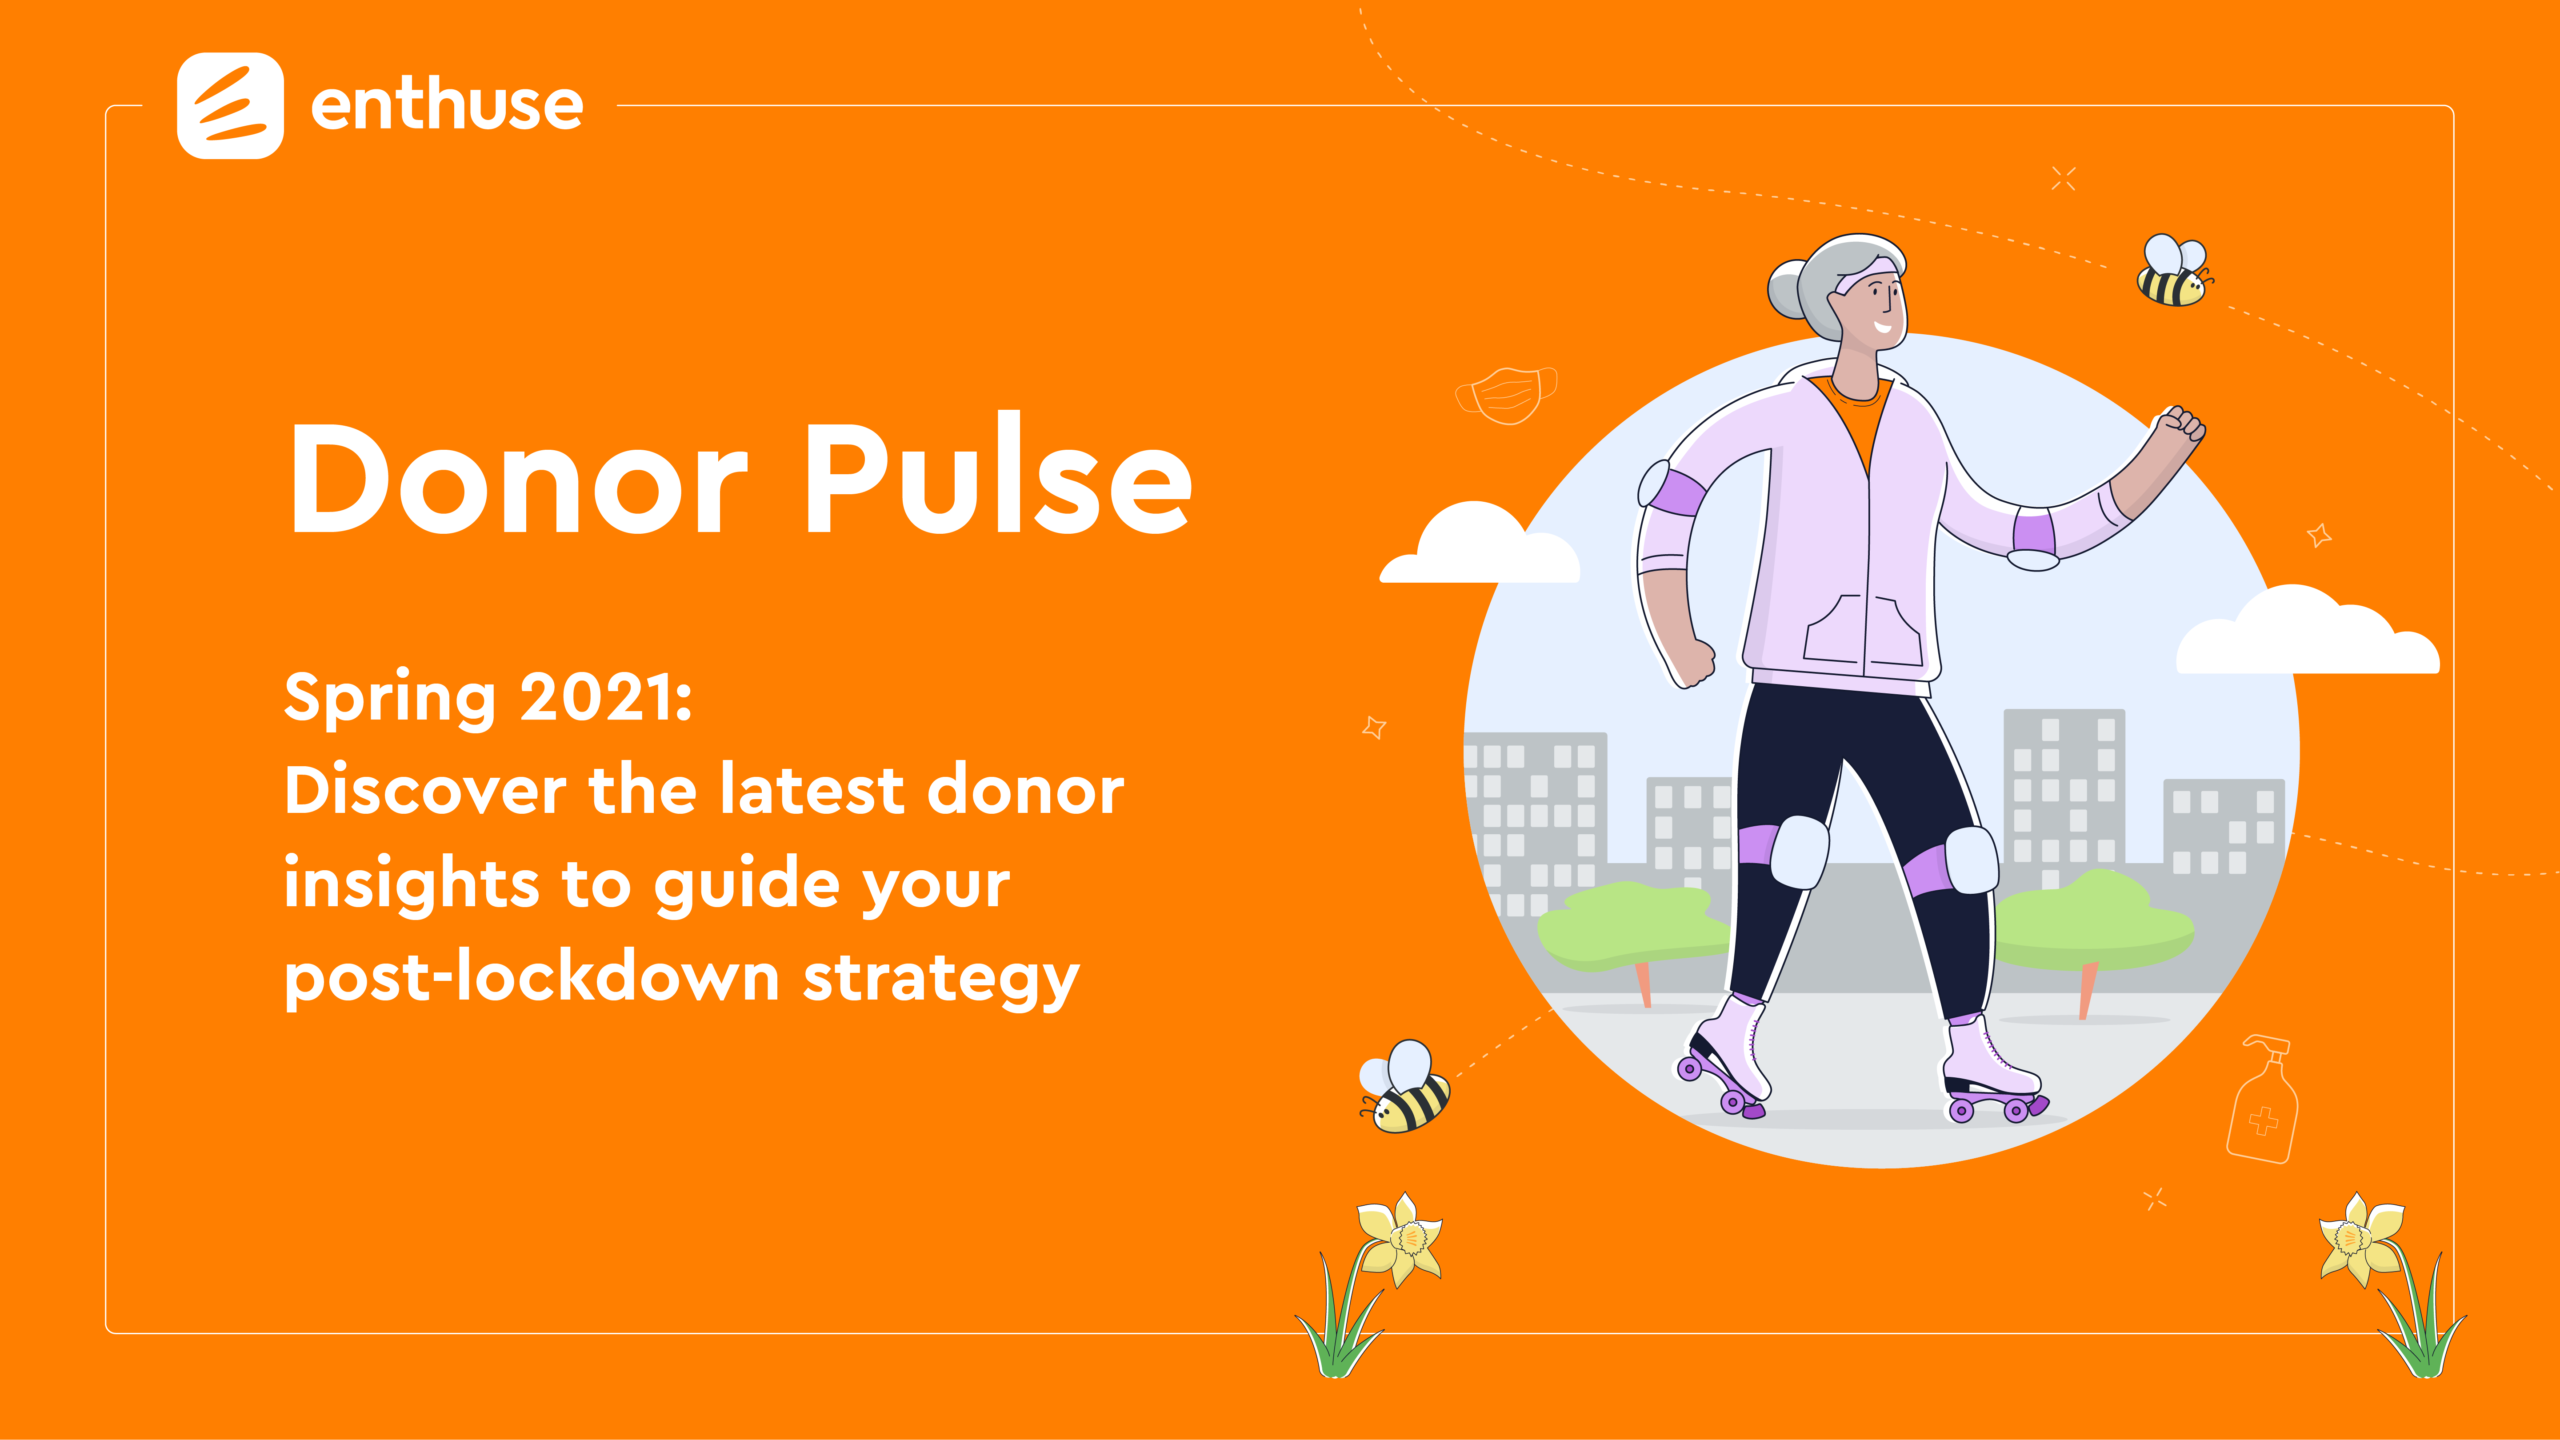 Enthuse Donor Pulse Spring 2021